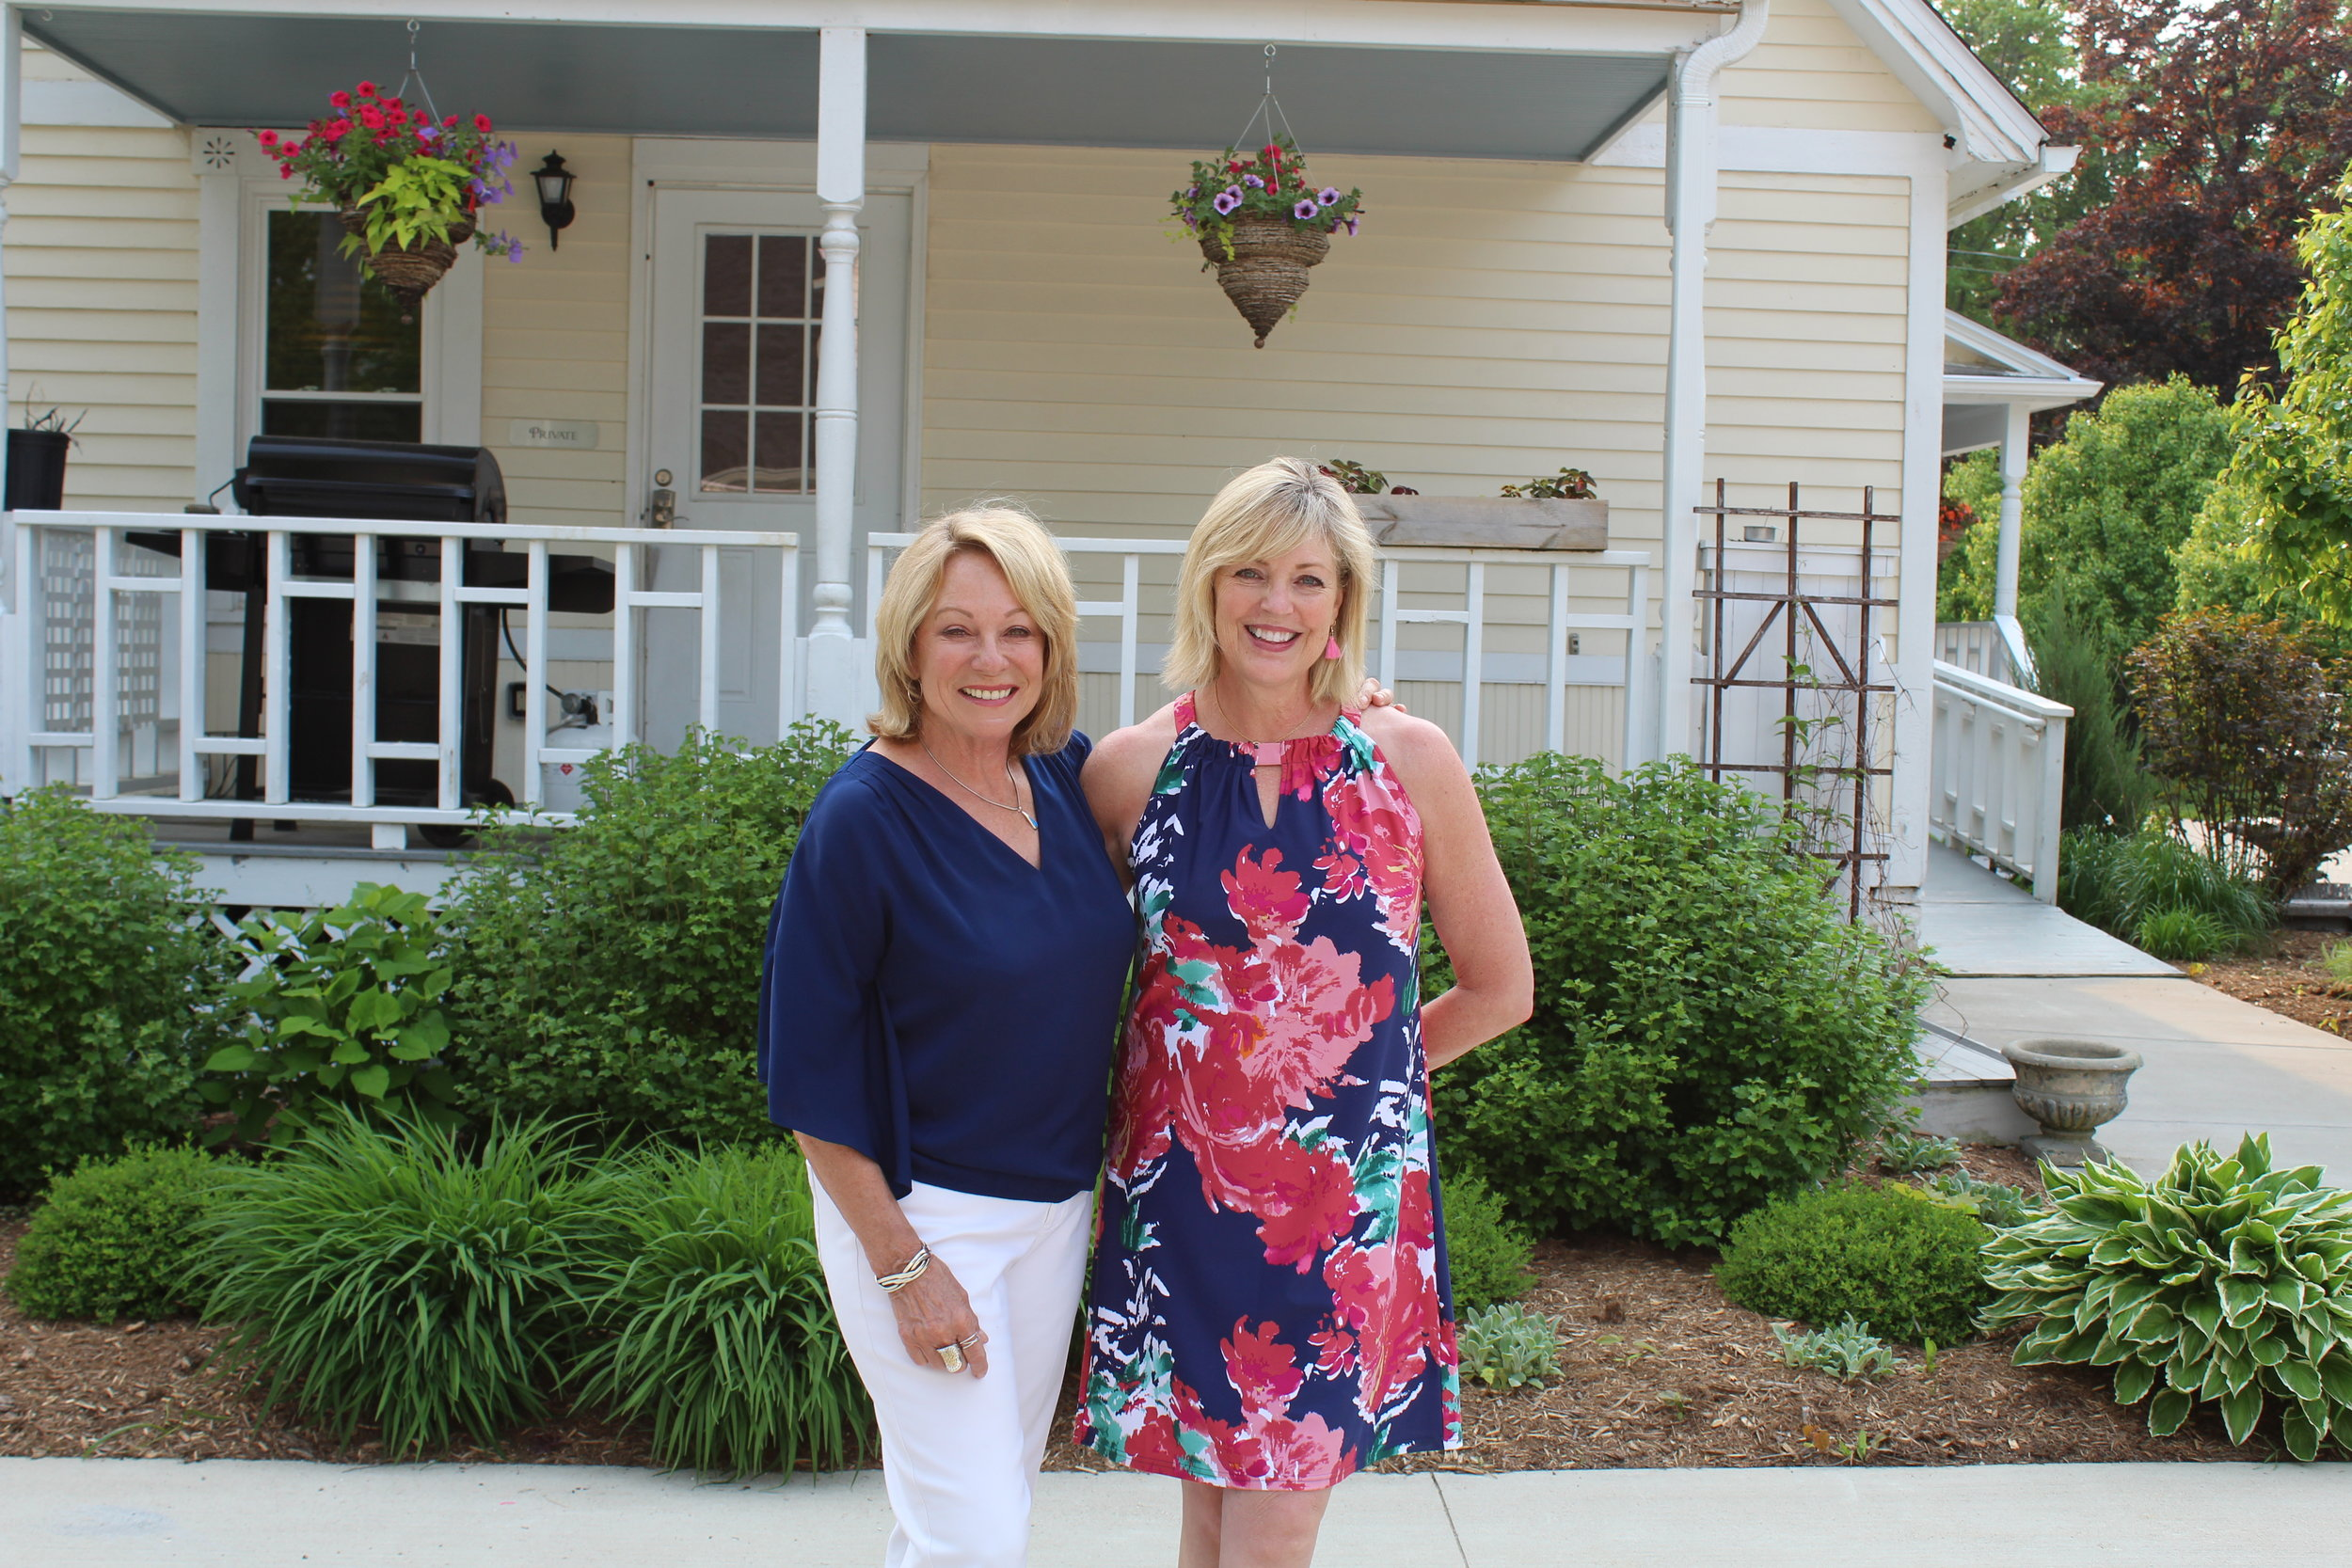 Hosts Joan Lloyd and Jo Ellen Madden greet guests in front of the Greenway House Bed and Breakfast in Green Lake.